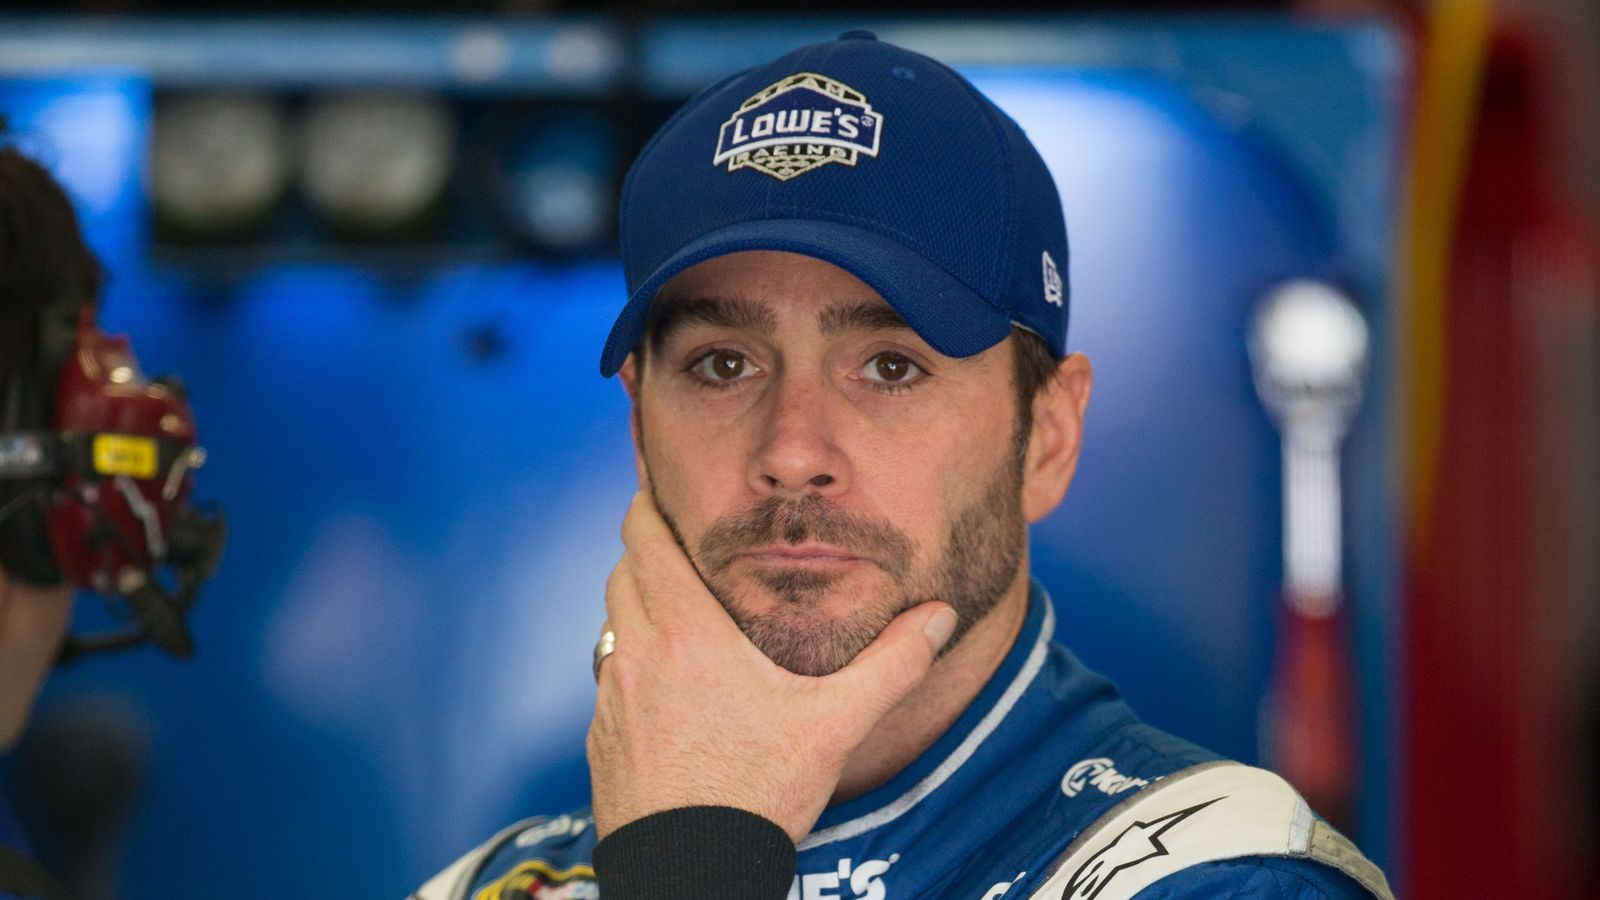 Atlanta preview New rules throw drivers a curve Nascar